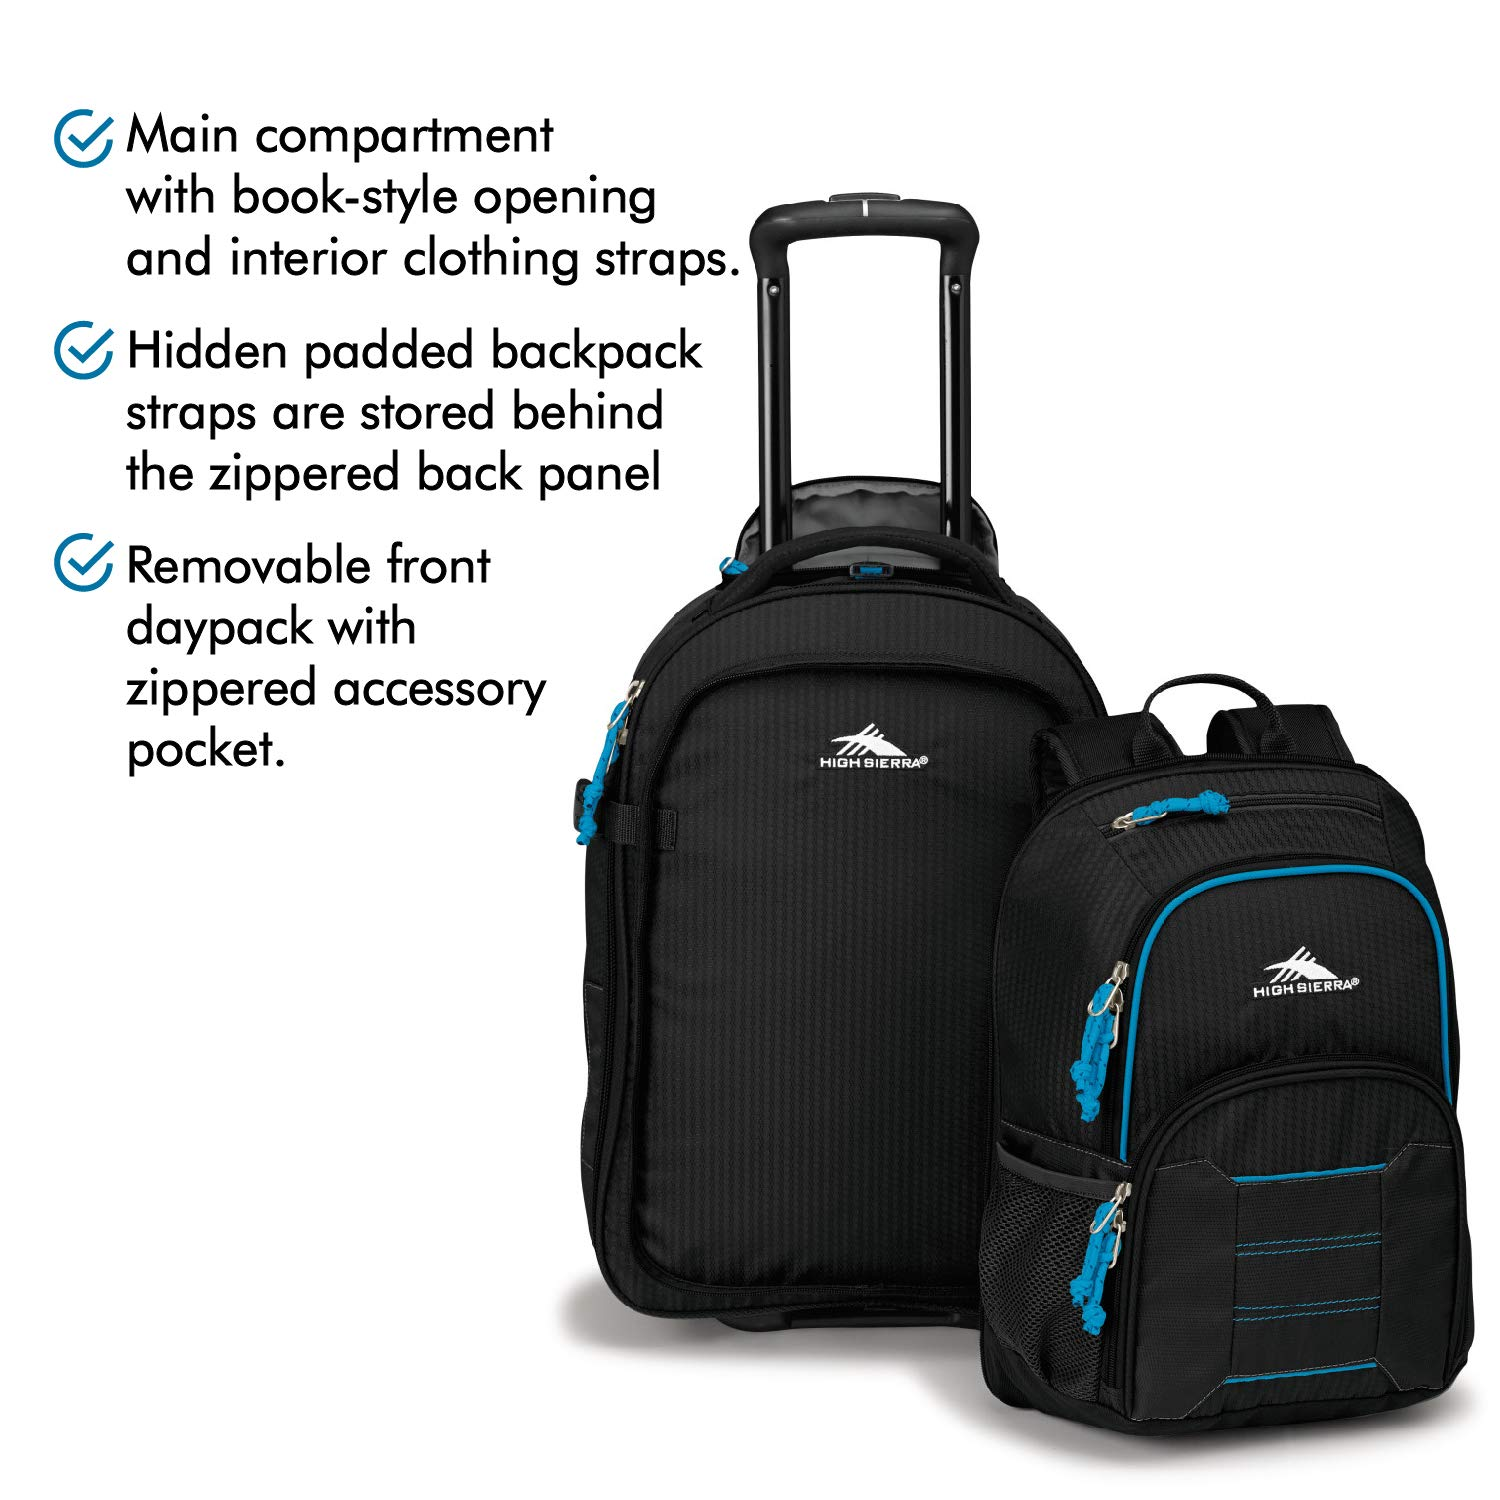 8c0e5b9f2 Amazon.com: High Sierra Ultimate Access 2.0 Carry-on Wheeled Backpack,  Black/Blue Print: Sports & Outdoors